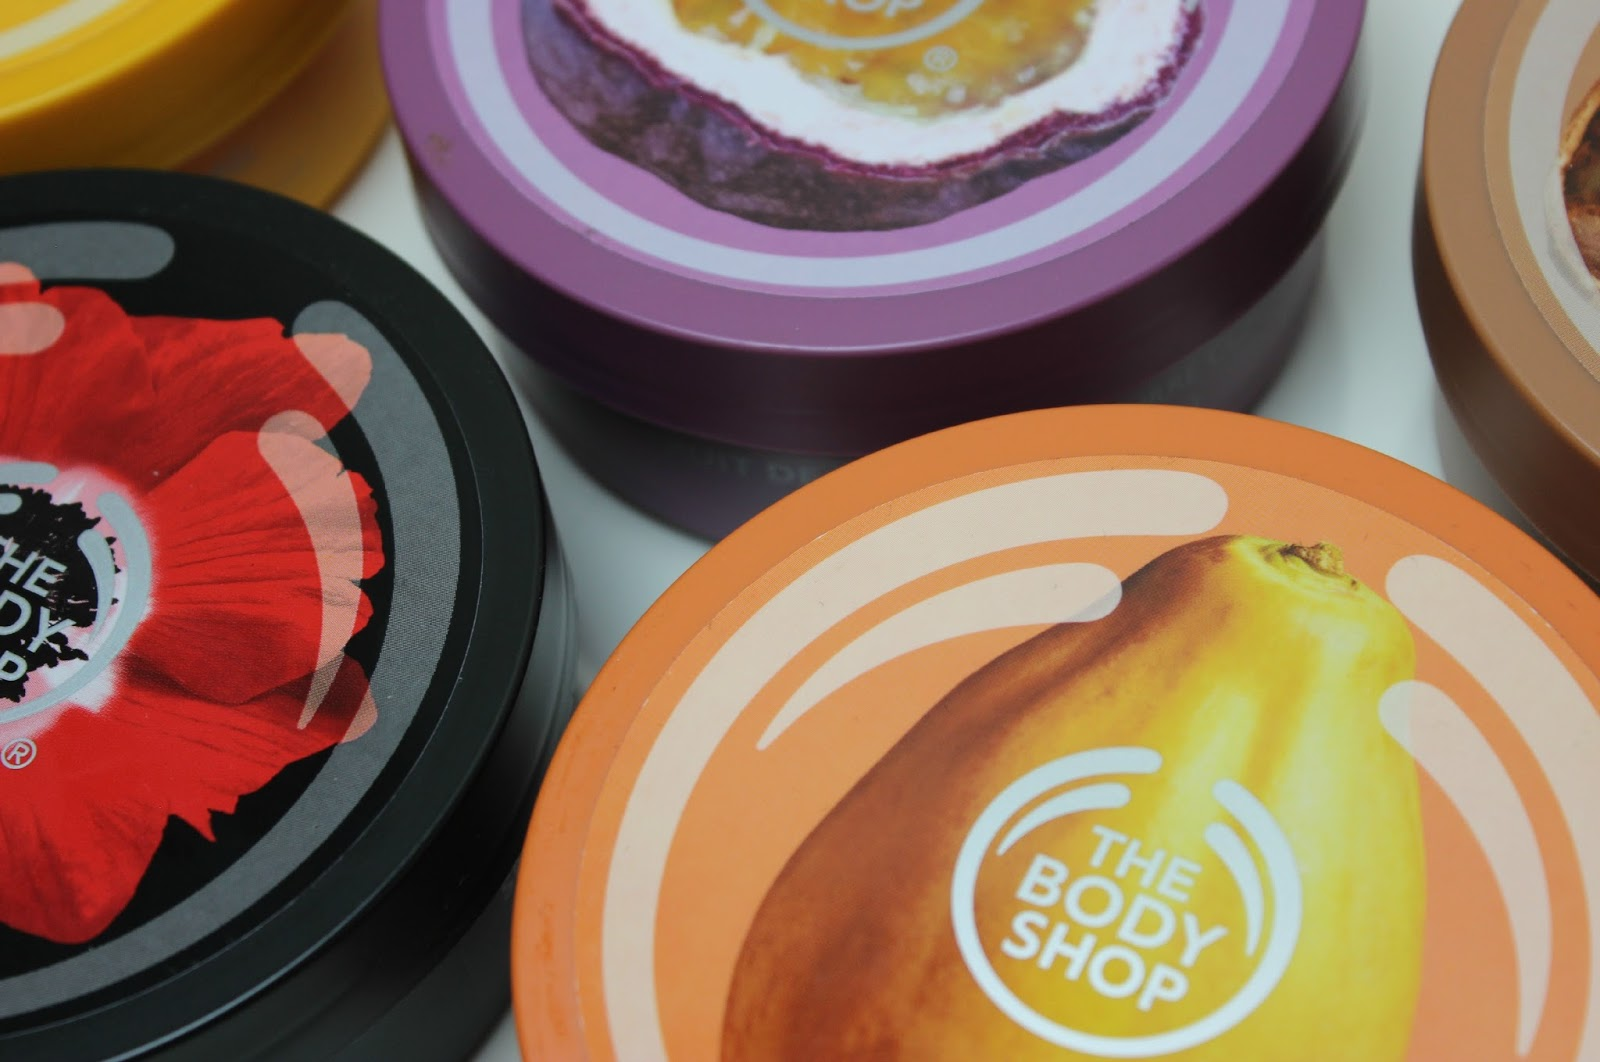 A picture of The Body Shop Body Butter